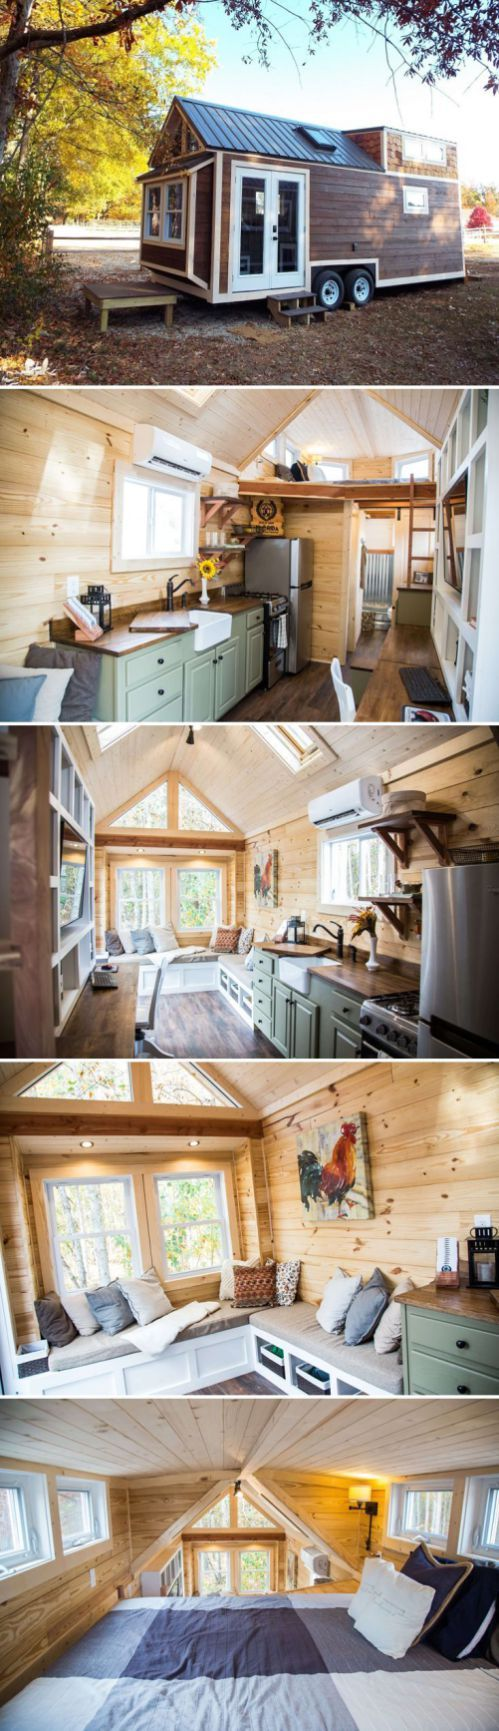 23 Best Tiny Houses 2018 With Images Best Tiny House Tiny House Interior Design Tiny House Interior